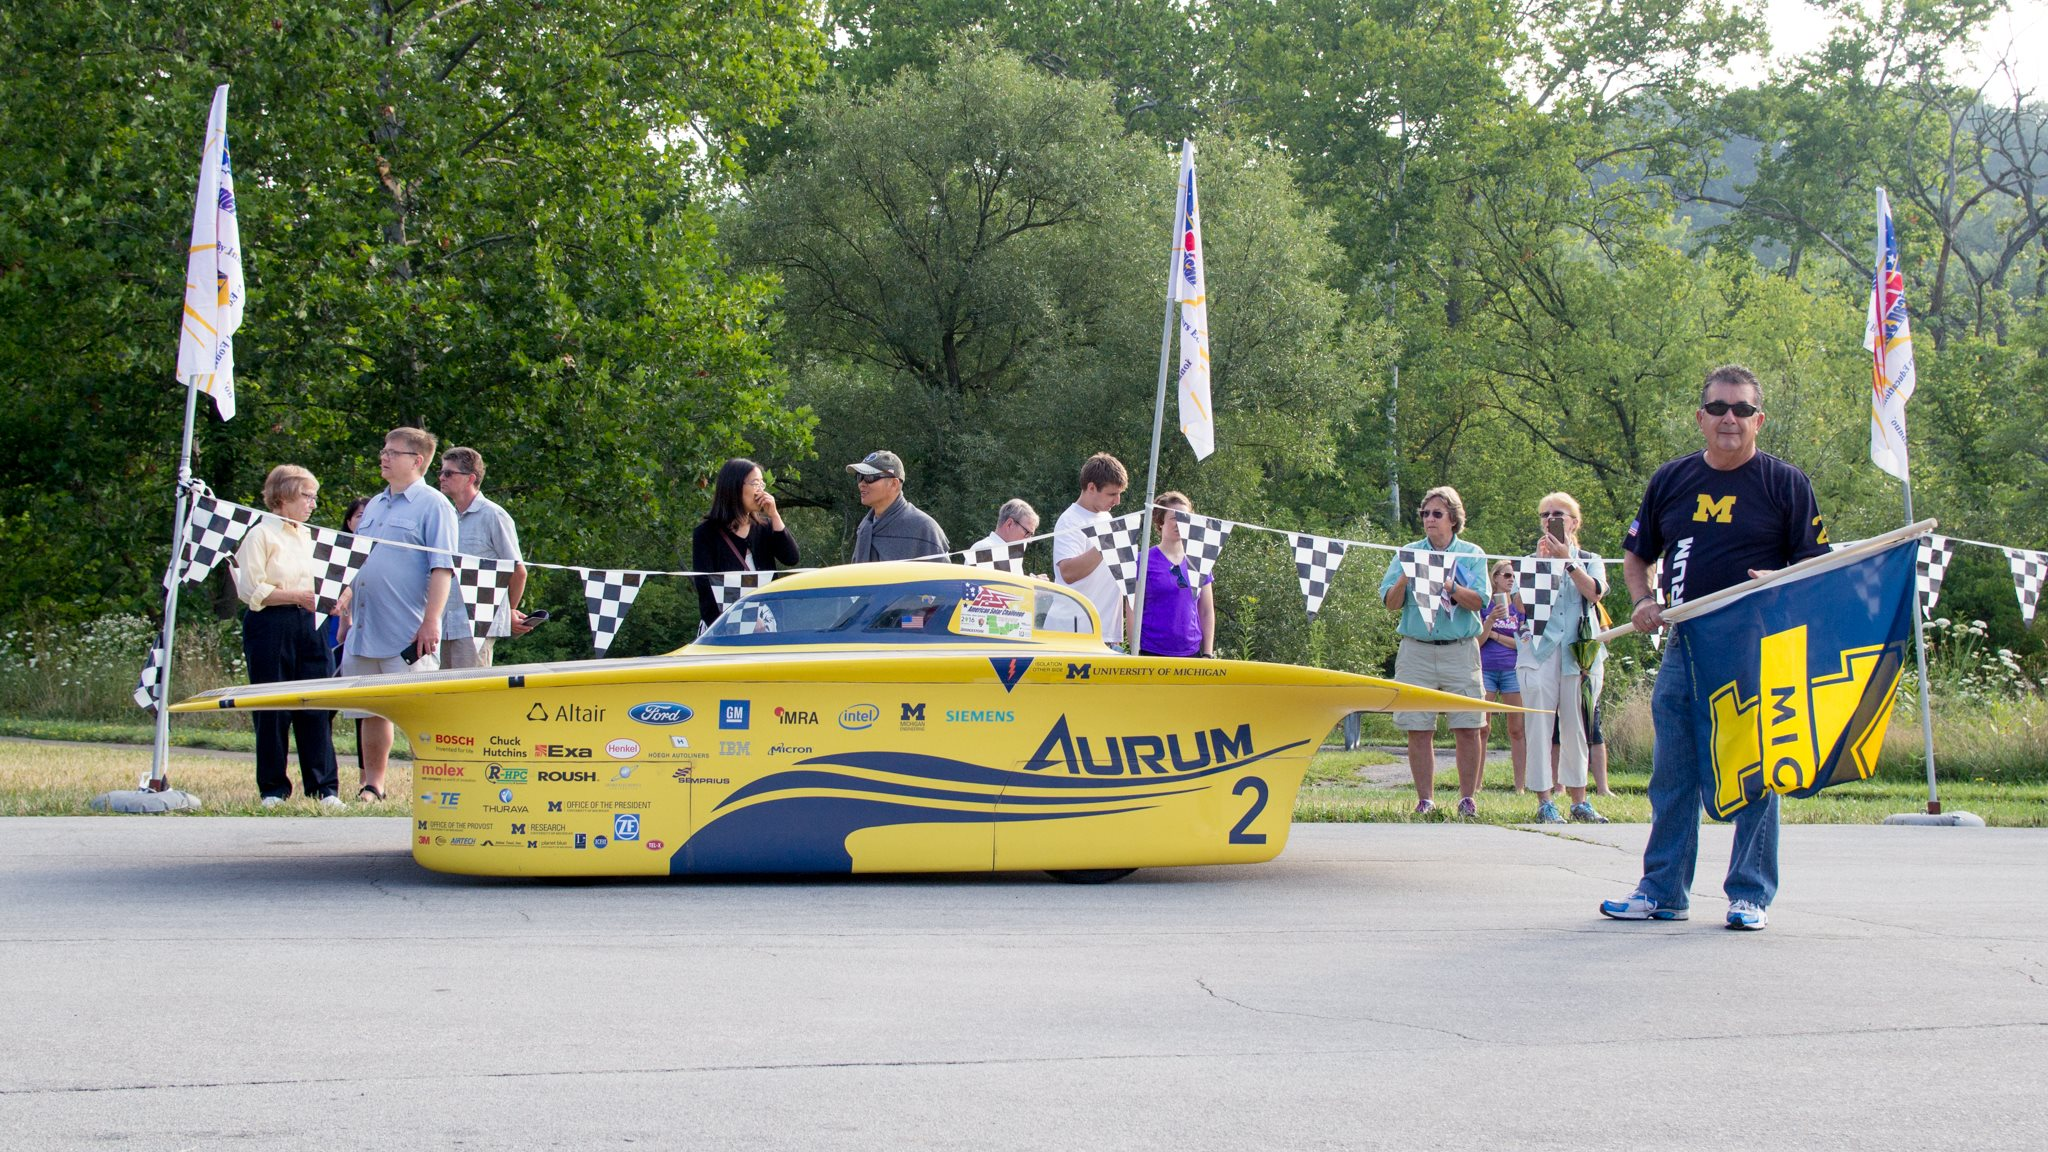 Chito Garcia stands beside Aurum, ready with flag in hand for race start.